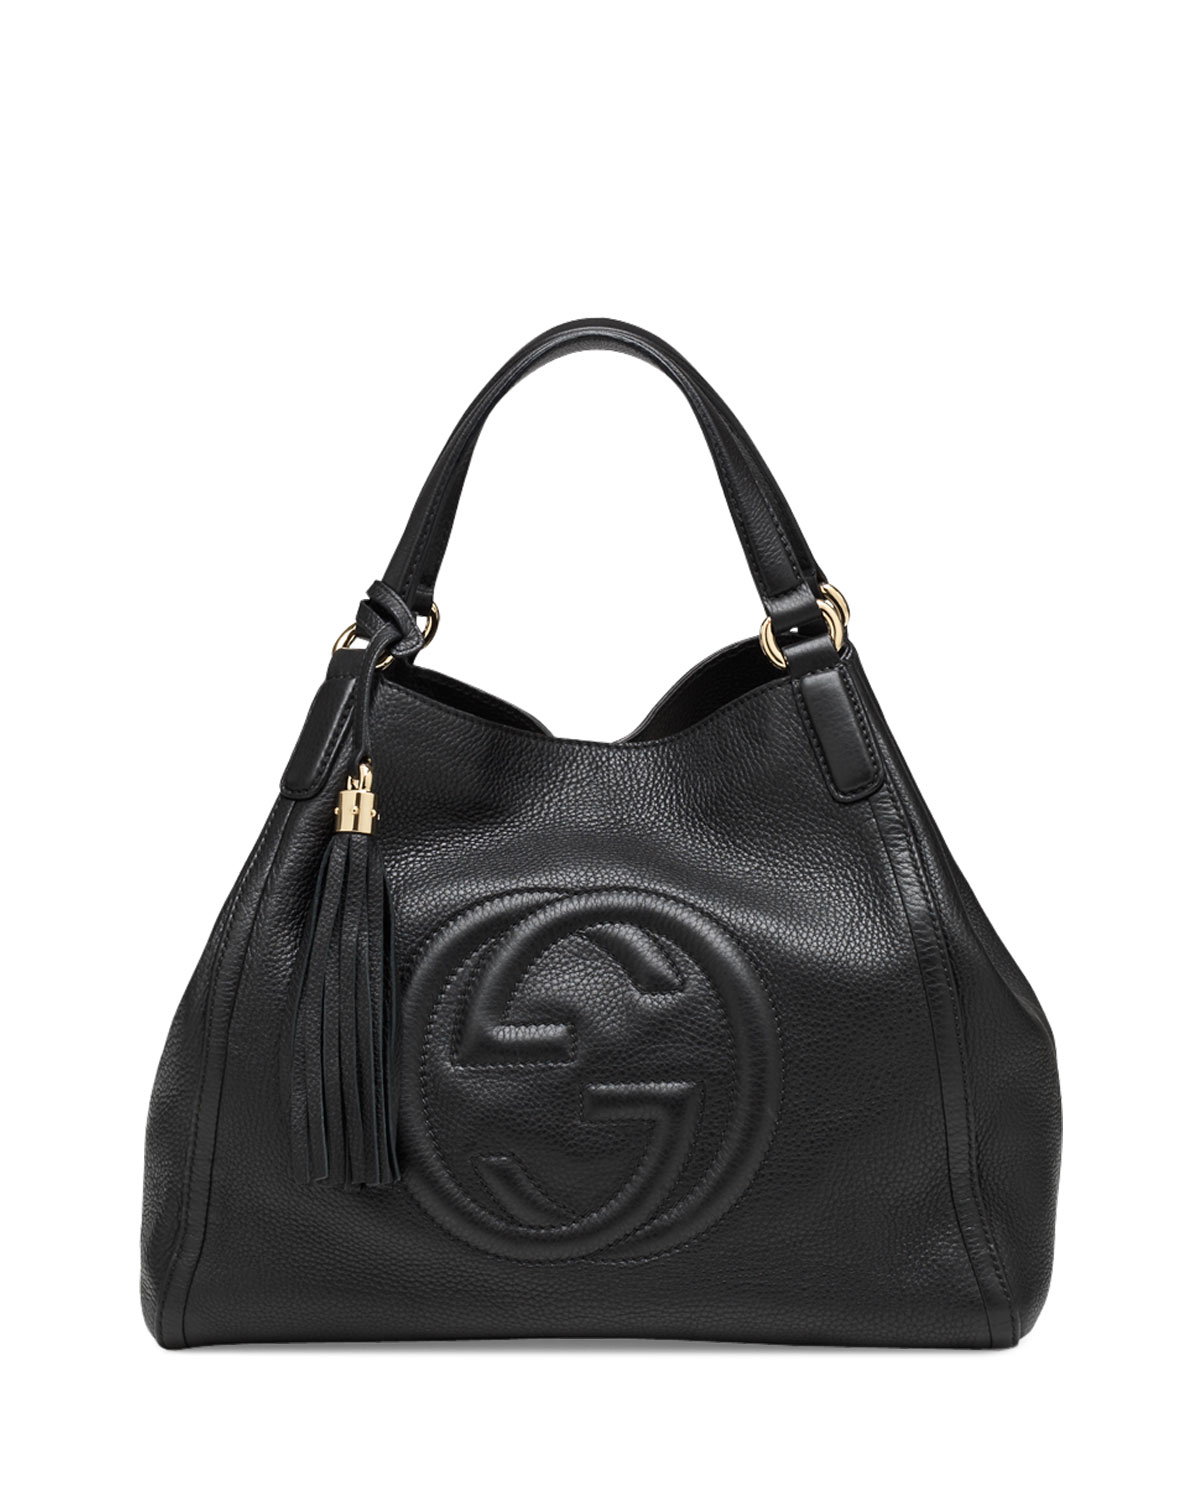 5200775fdd2827 Gucci Soho Leather Shoulder Bag, Black | Neiman Marcus